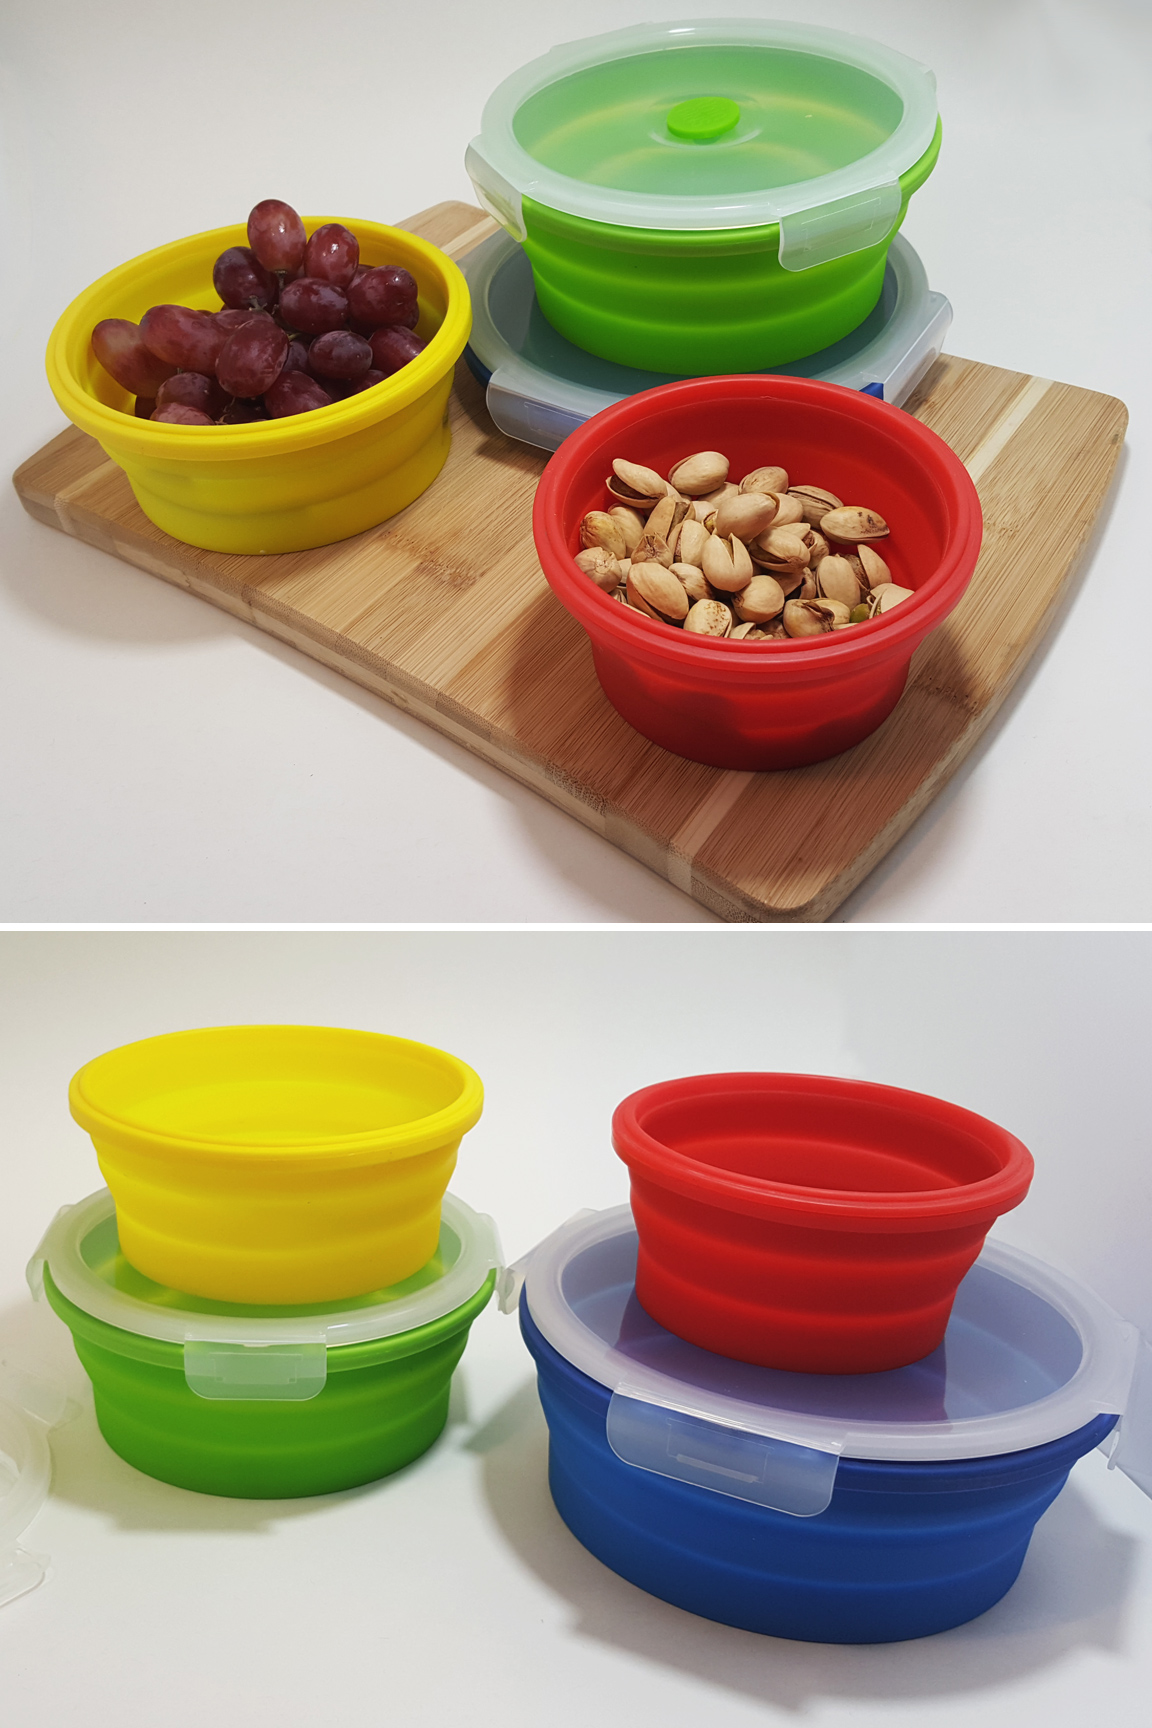 4 containers can hold a wide variety of foods and other stuff.